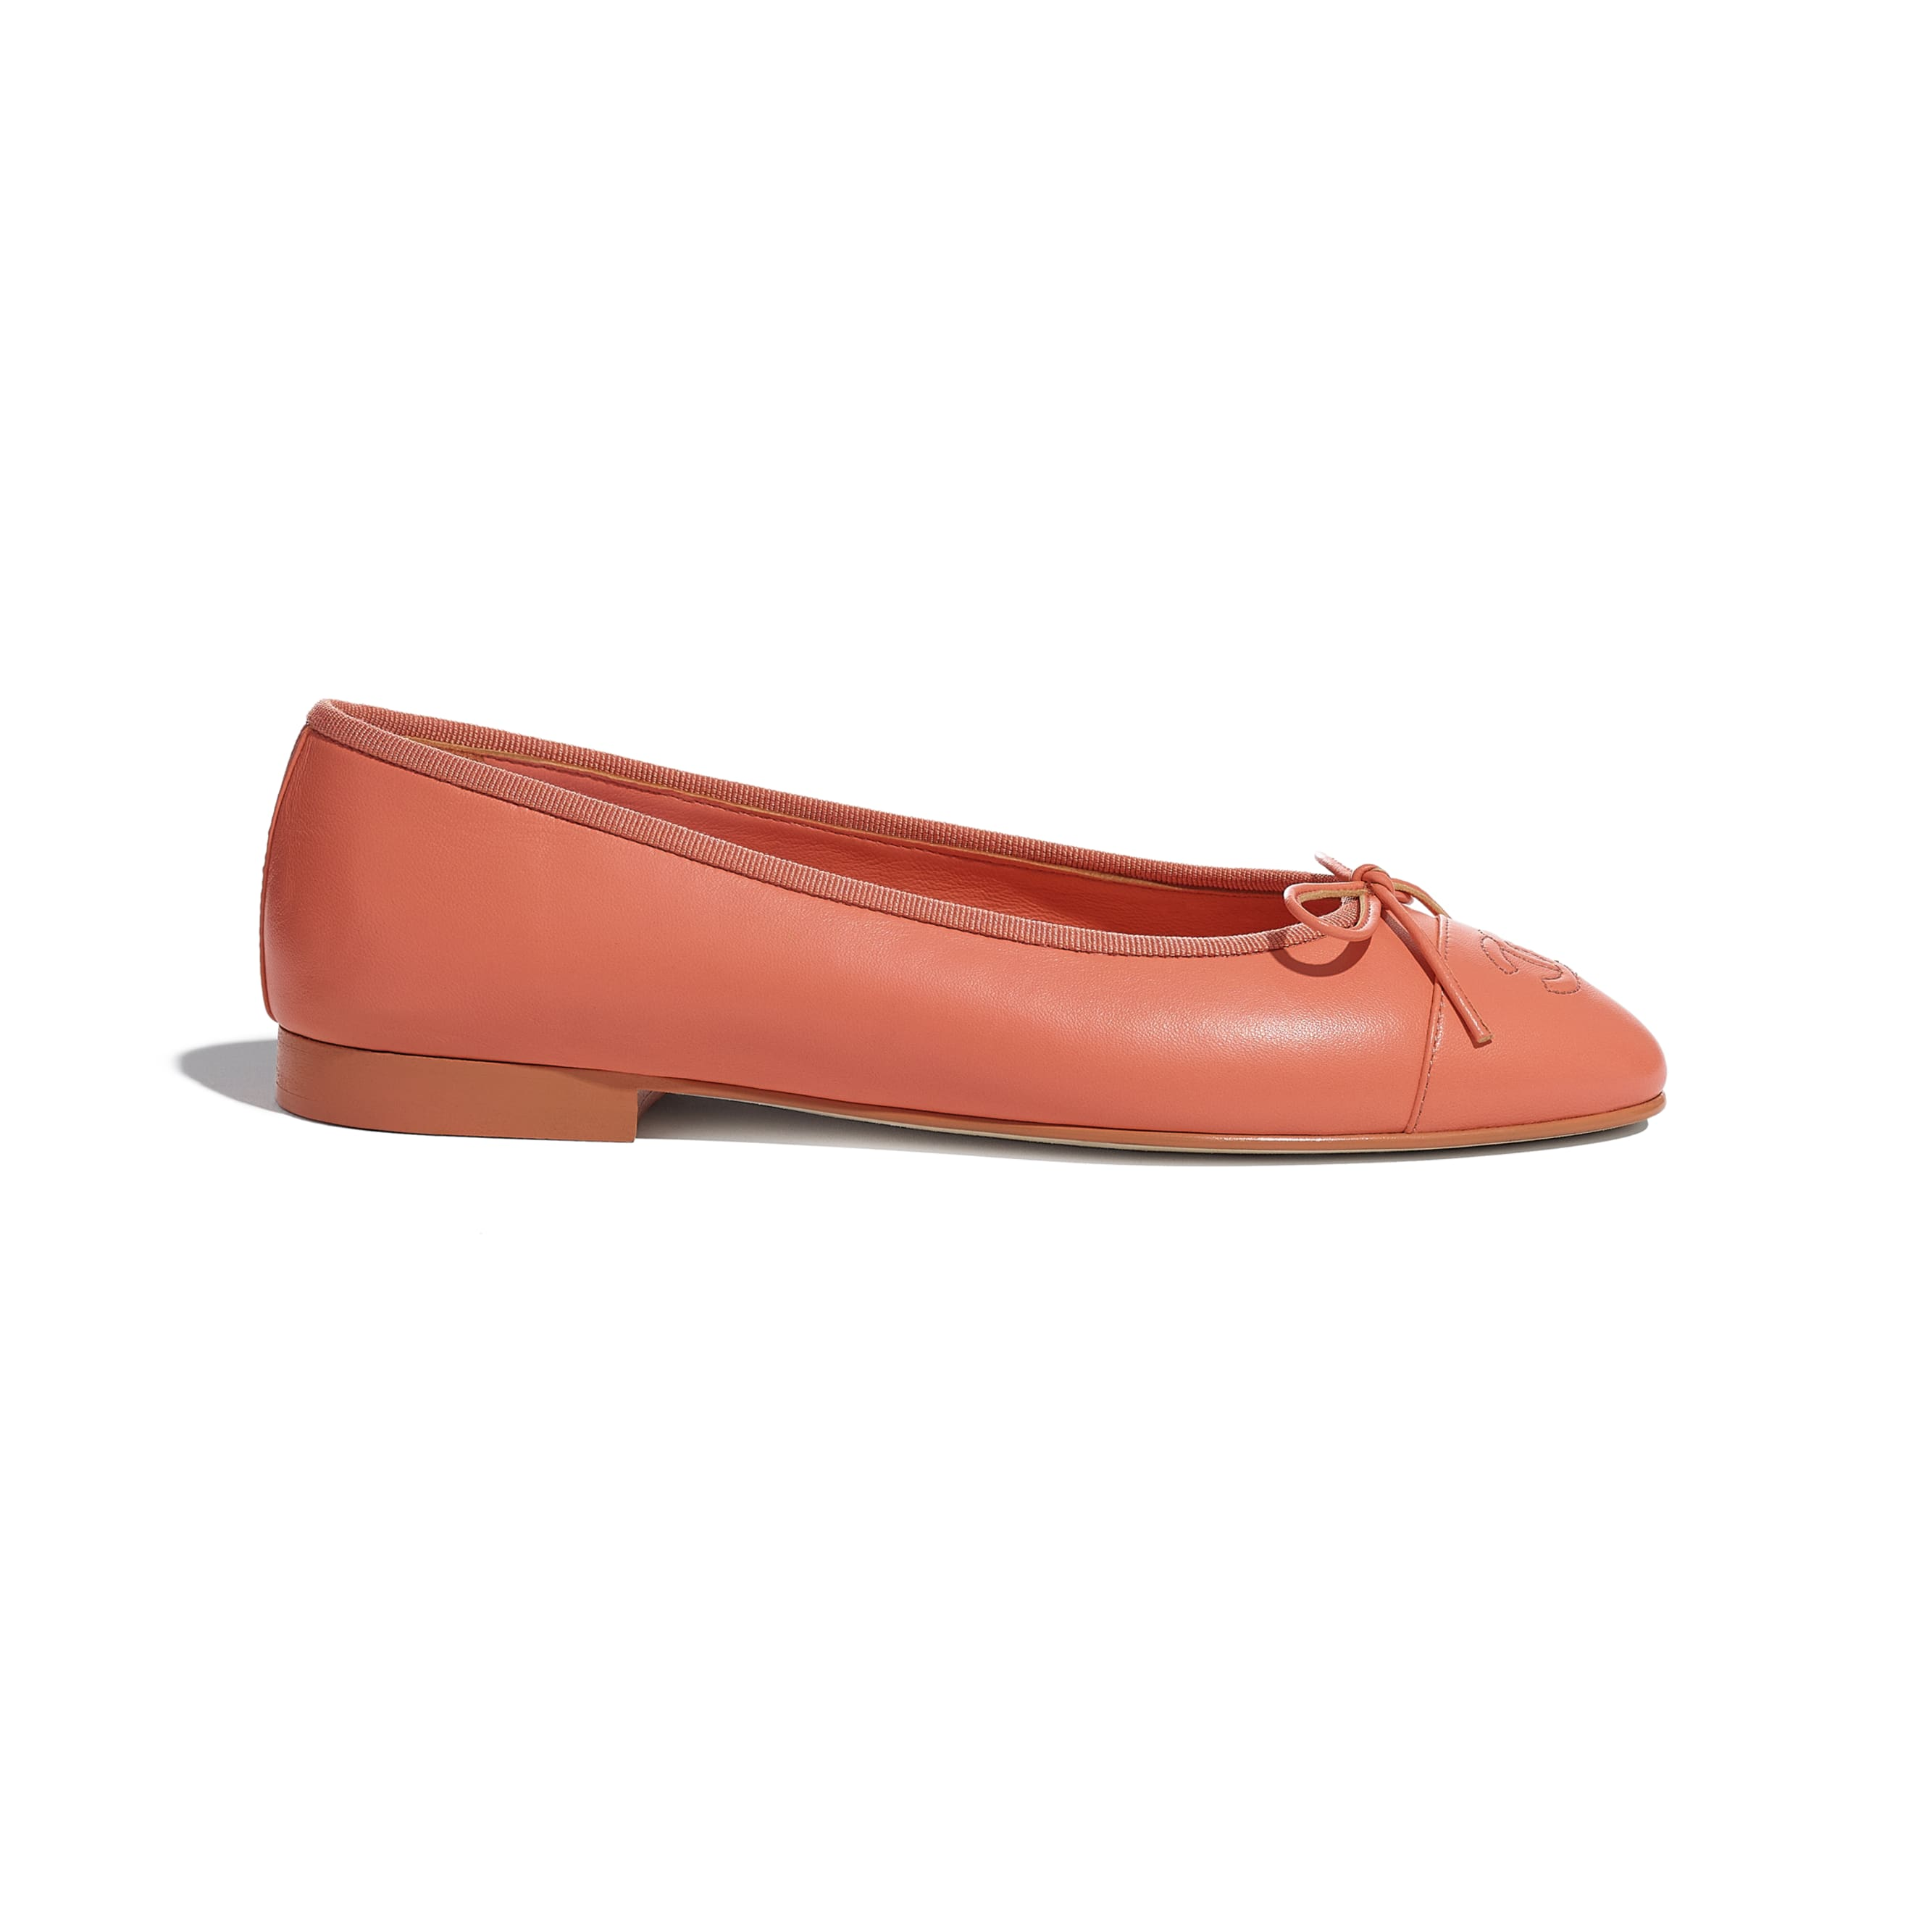 Flats - Neon Orange - Lambskin - CHANEL - Default view - see standard sized version